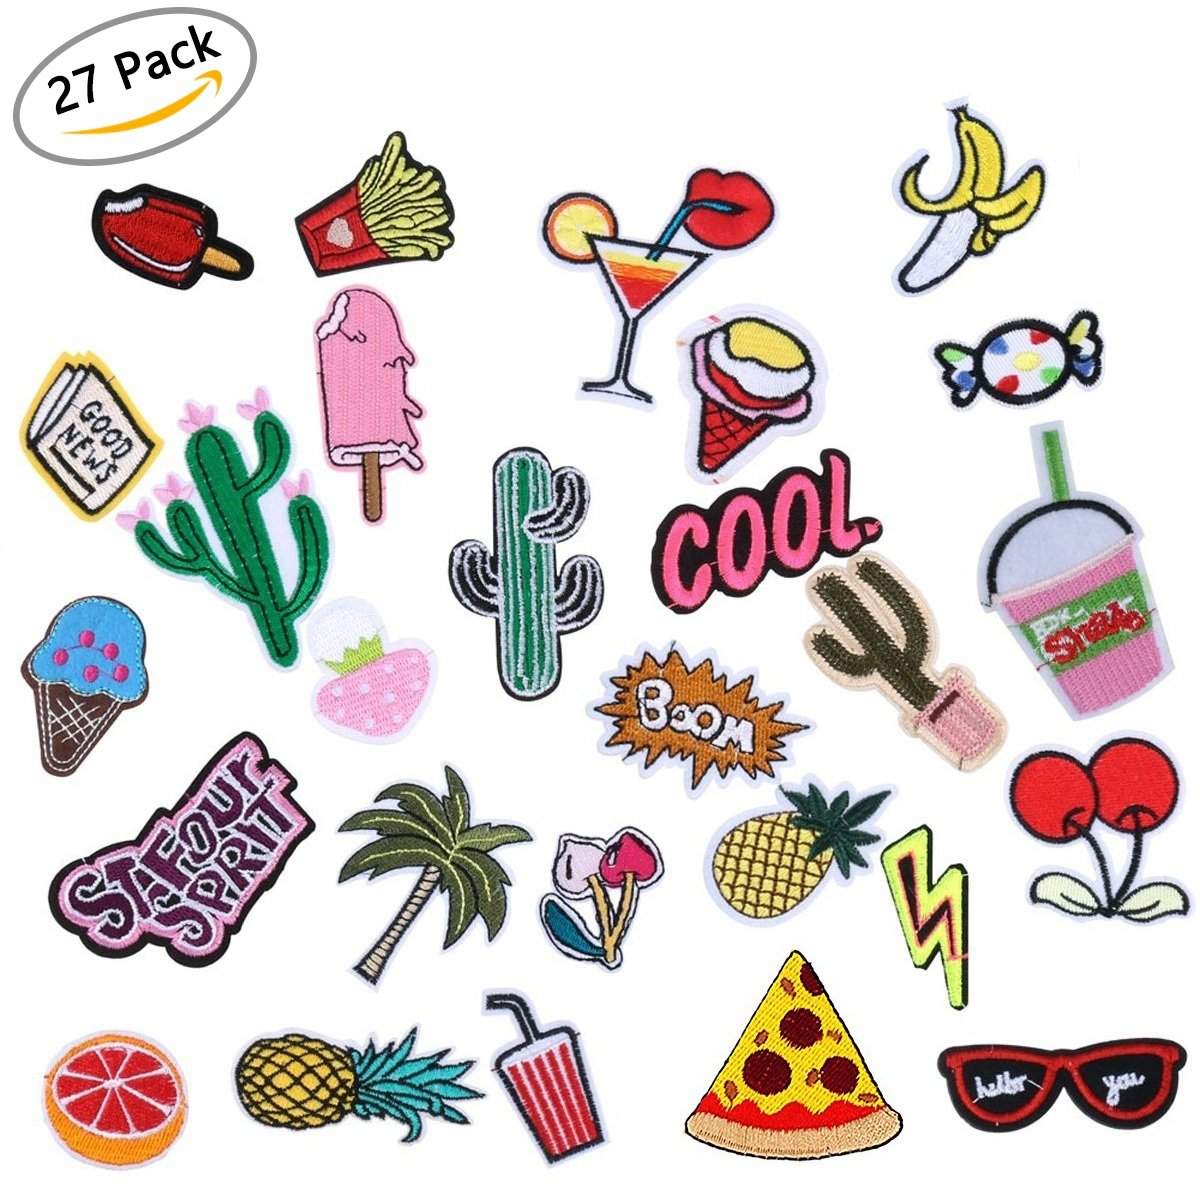 DIY Decoration Iron On Patches- Assorted Size Iron Embroidery Motif Applique Glitter Sequin Decoration Patches For Jeans Jacket, DIY Clothing, Handbag, Canvas Shoes,Caps(27pcs)